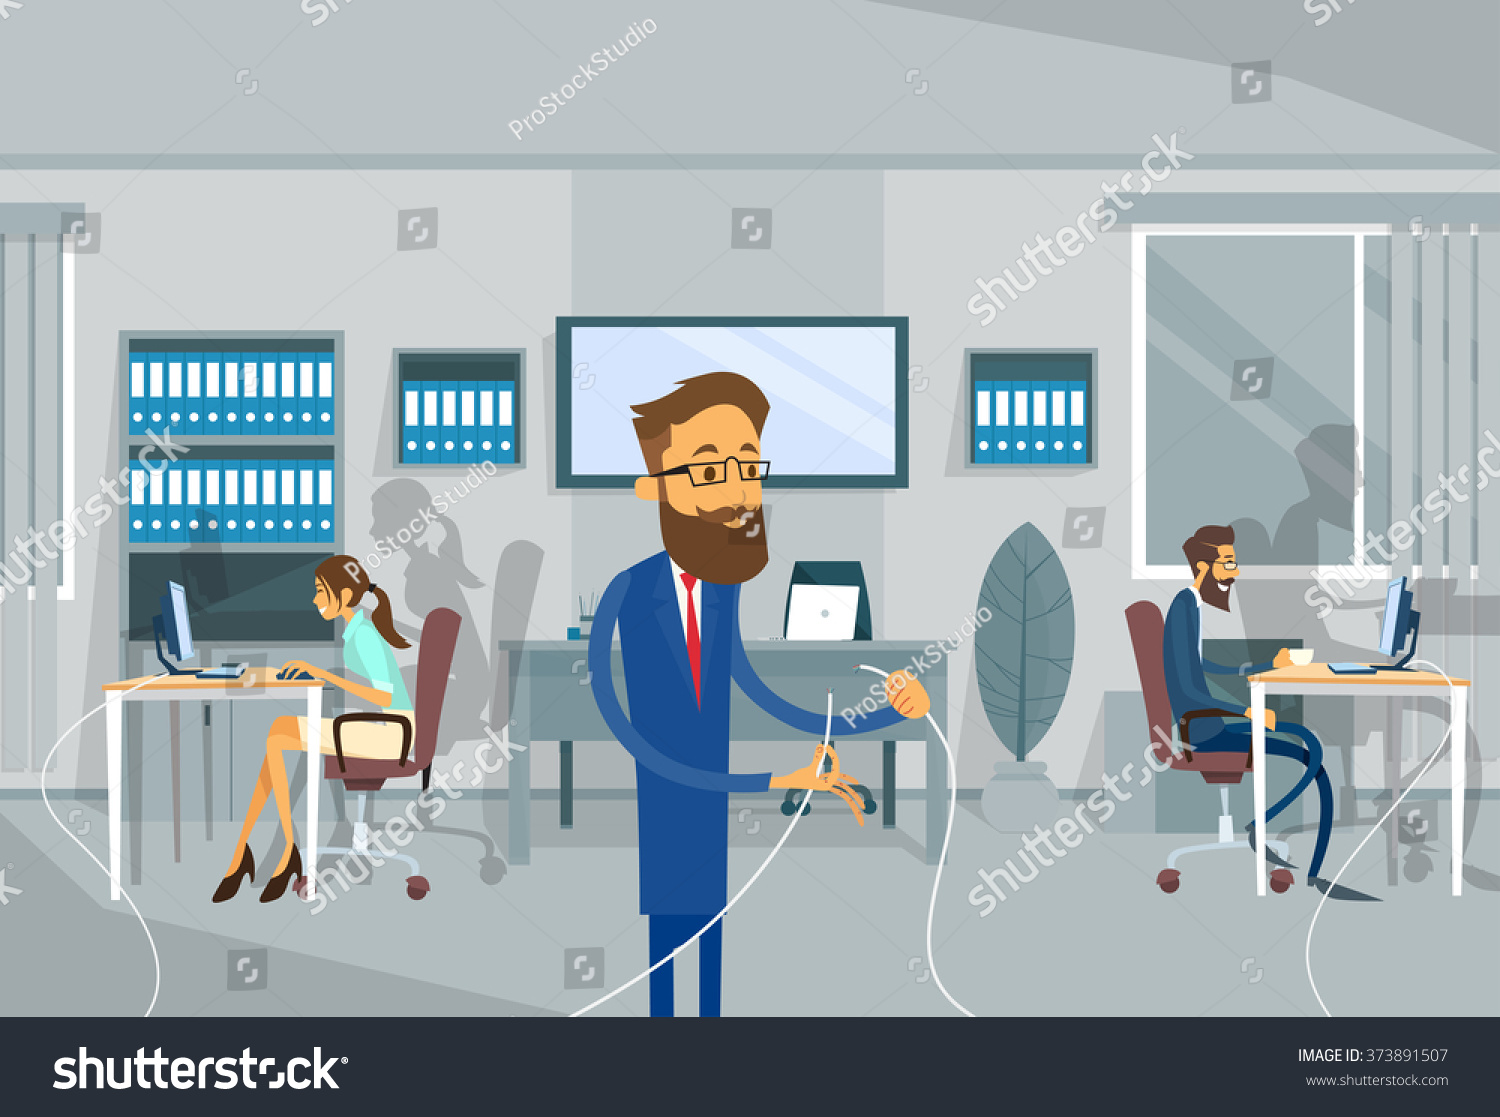 business man disconnect cable office internet stock vector business man disconnect cable office internet network connection problem concept vector illustration